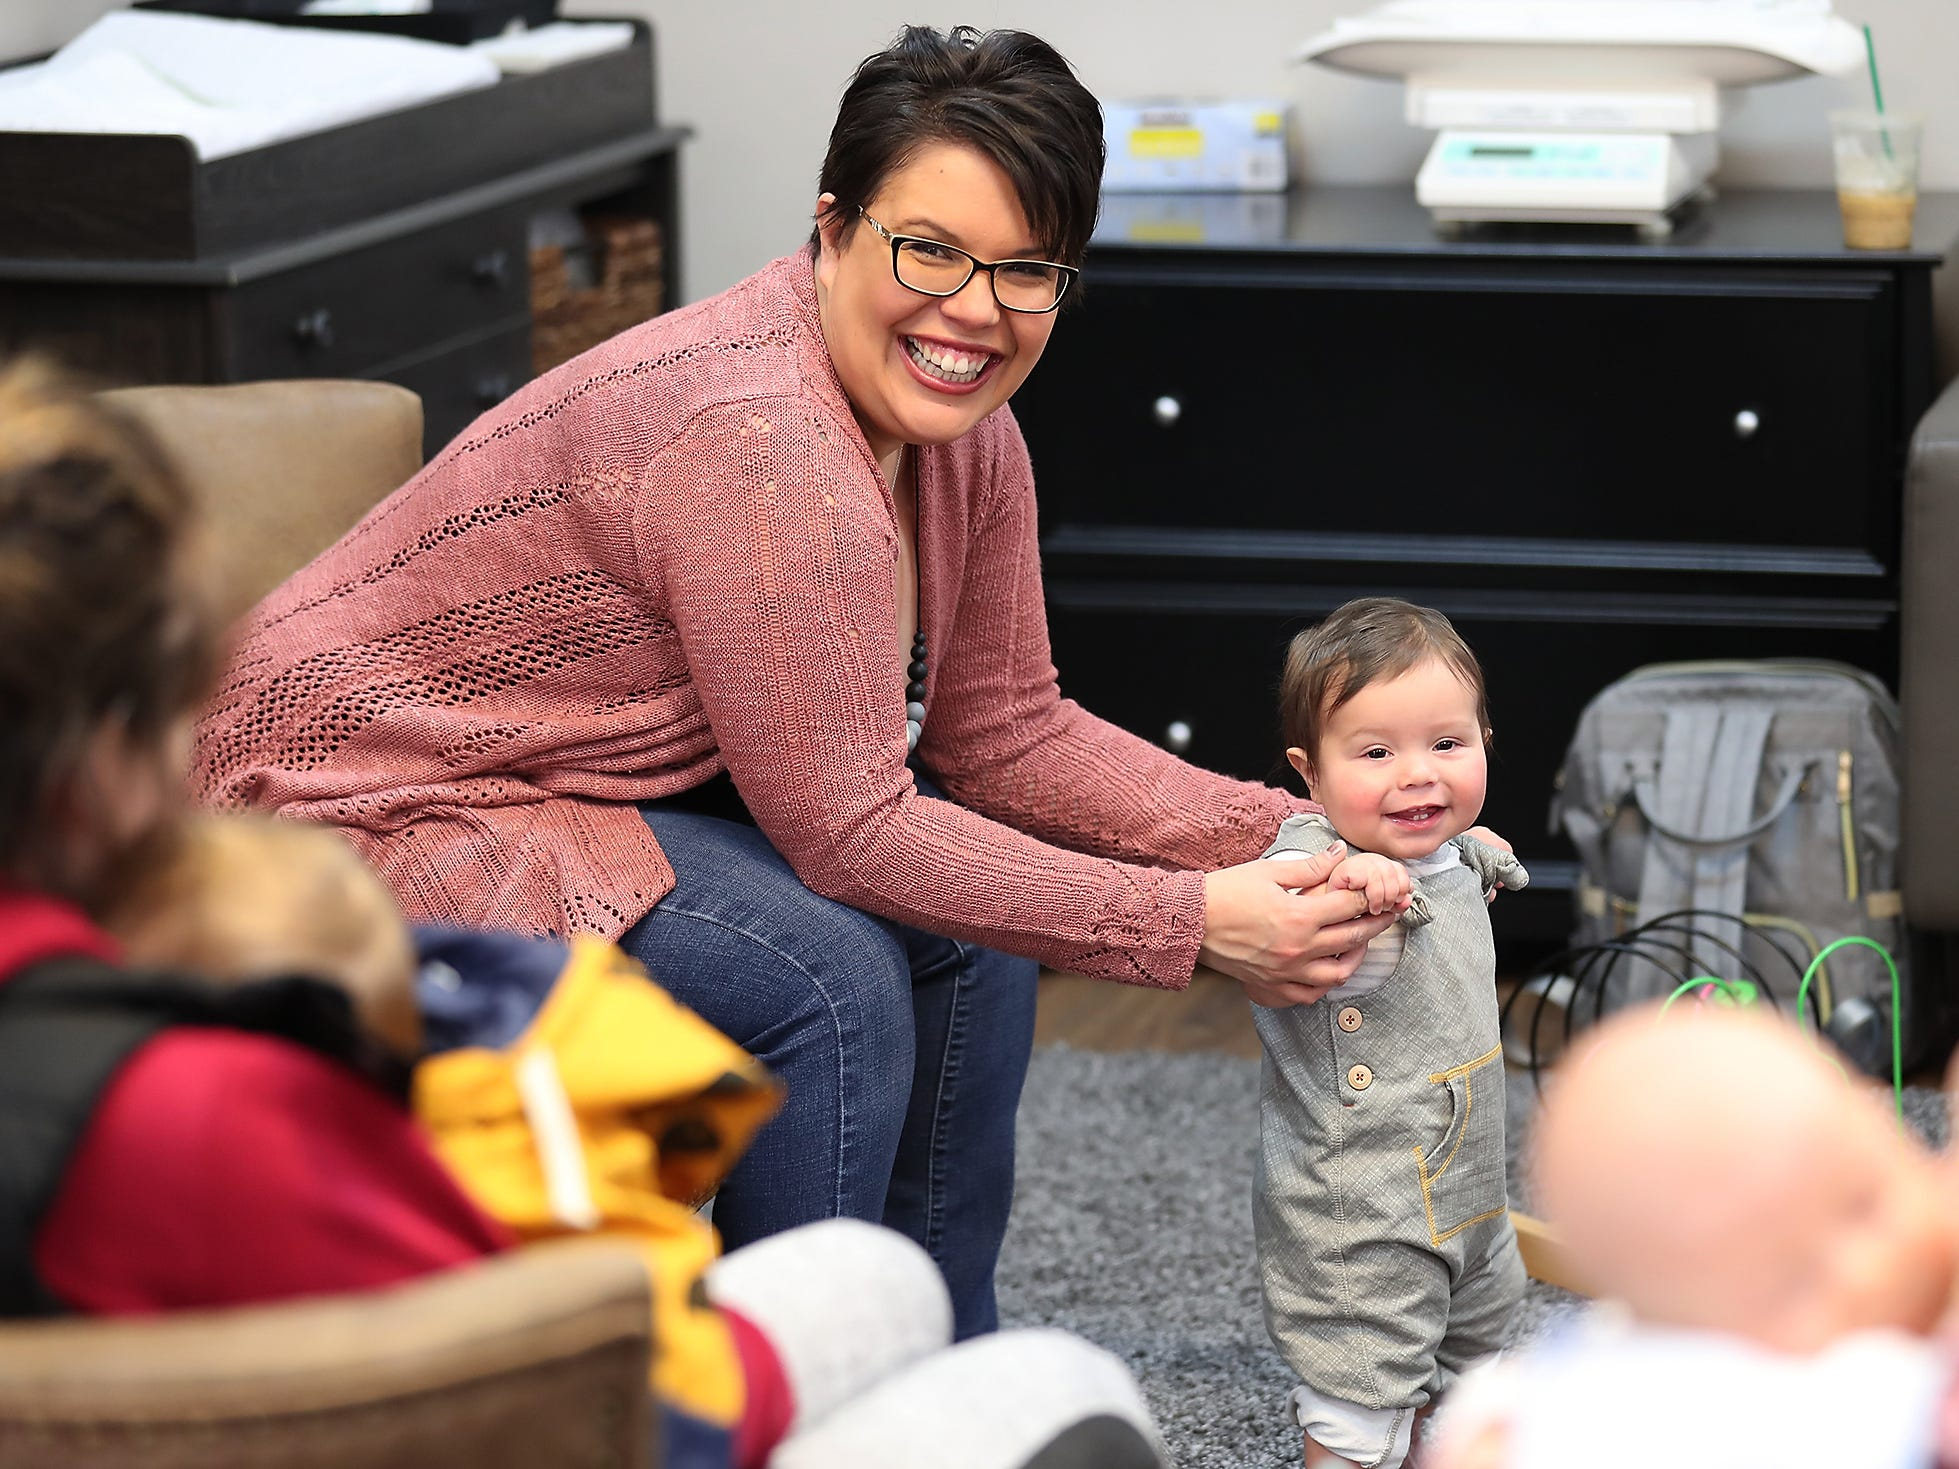 Elizabeth Montez helps 9-month-old son Langston Montez-Giras stand as she leads the Giggle & Grow Together group at Nurturing Expressions in Poulsbo on Tuesday, March 12, 2019.